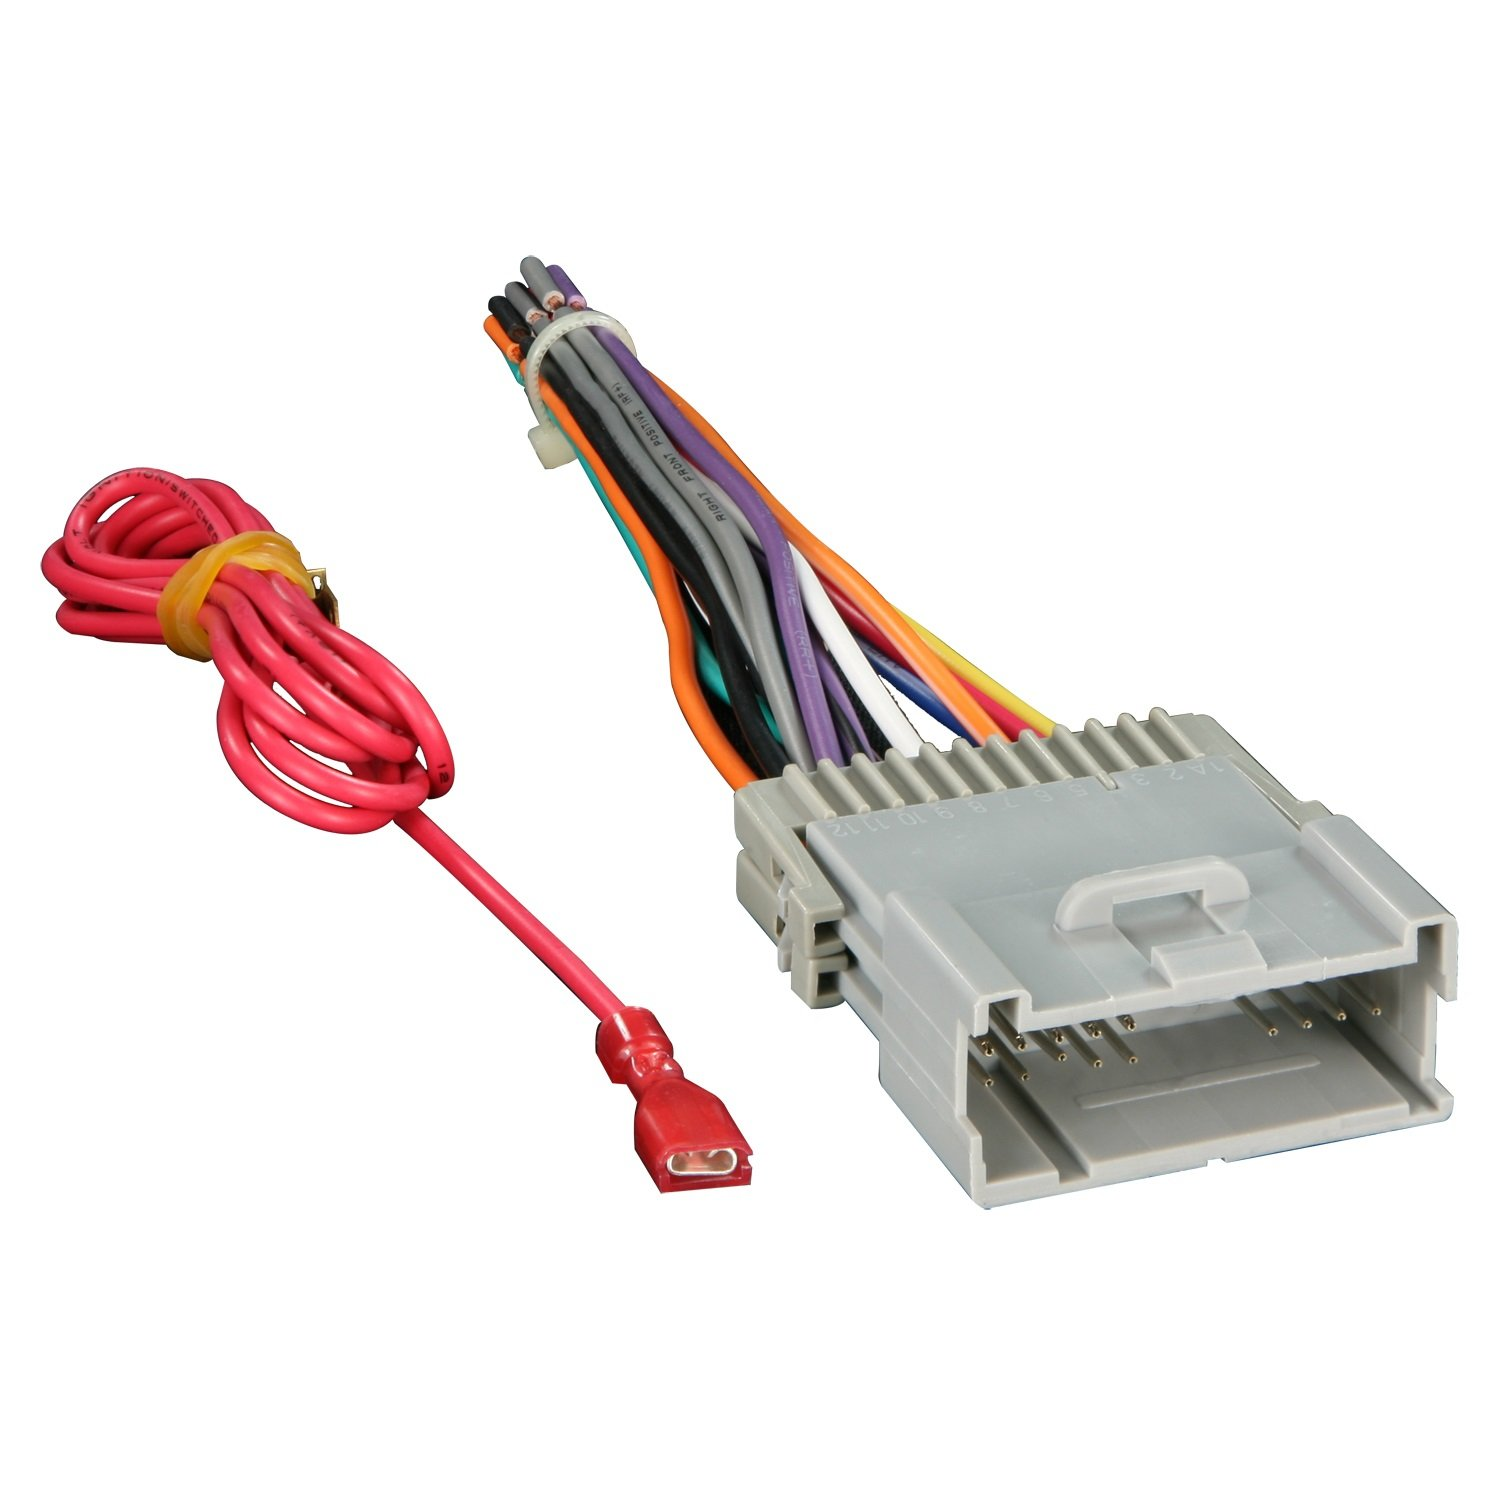 61eewxp9orL._SL1500_ amazon com metra 70 2003 radio wiring harness for gm 98 08 05 colorado radio wiring harness at mifinder.co